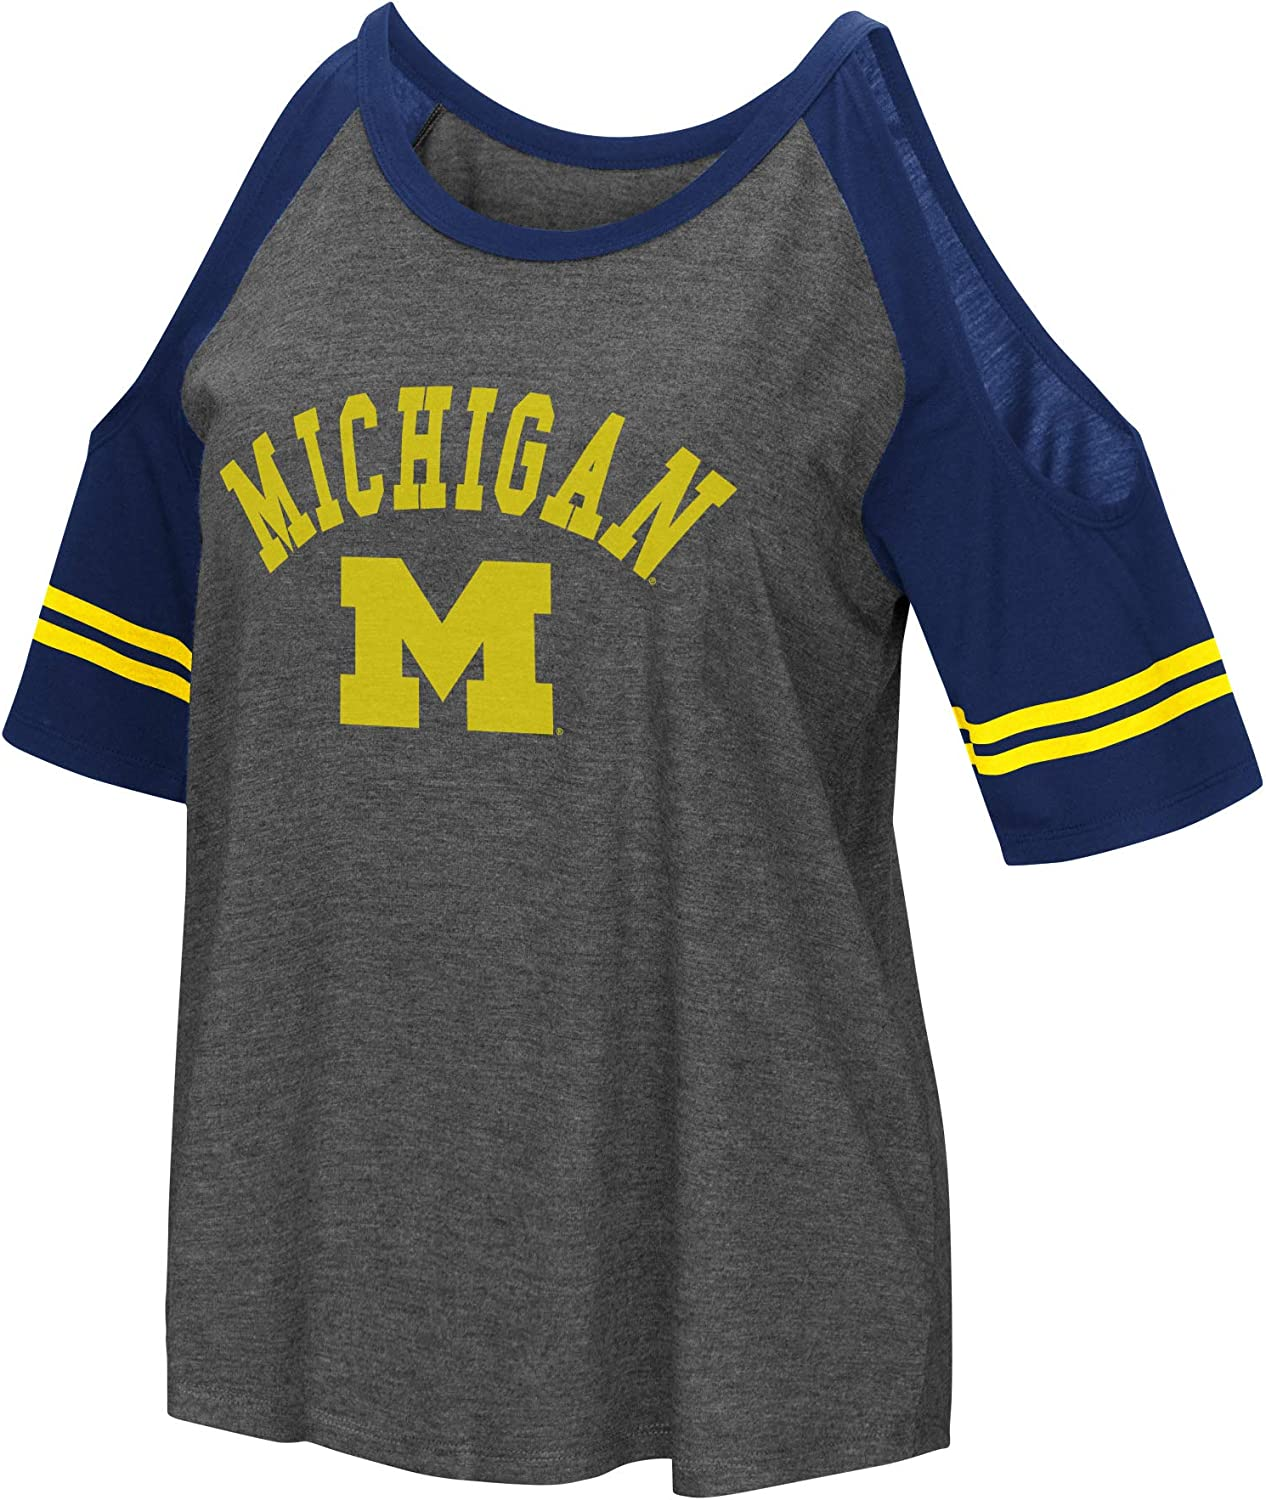 Colosseum NCAA Womens Casual Cold Shoulder Short Sleeve T-Shirt-Heather Charcoal